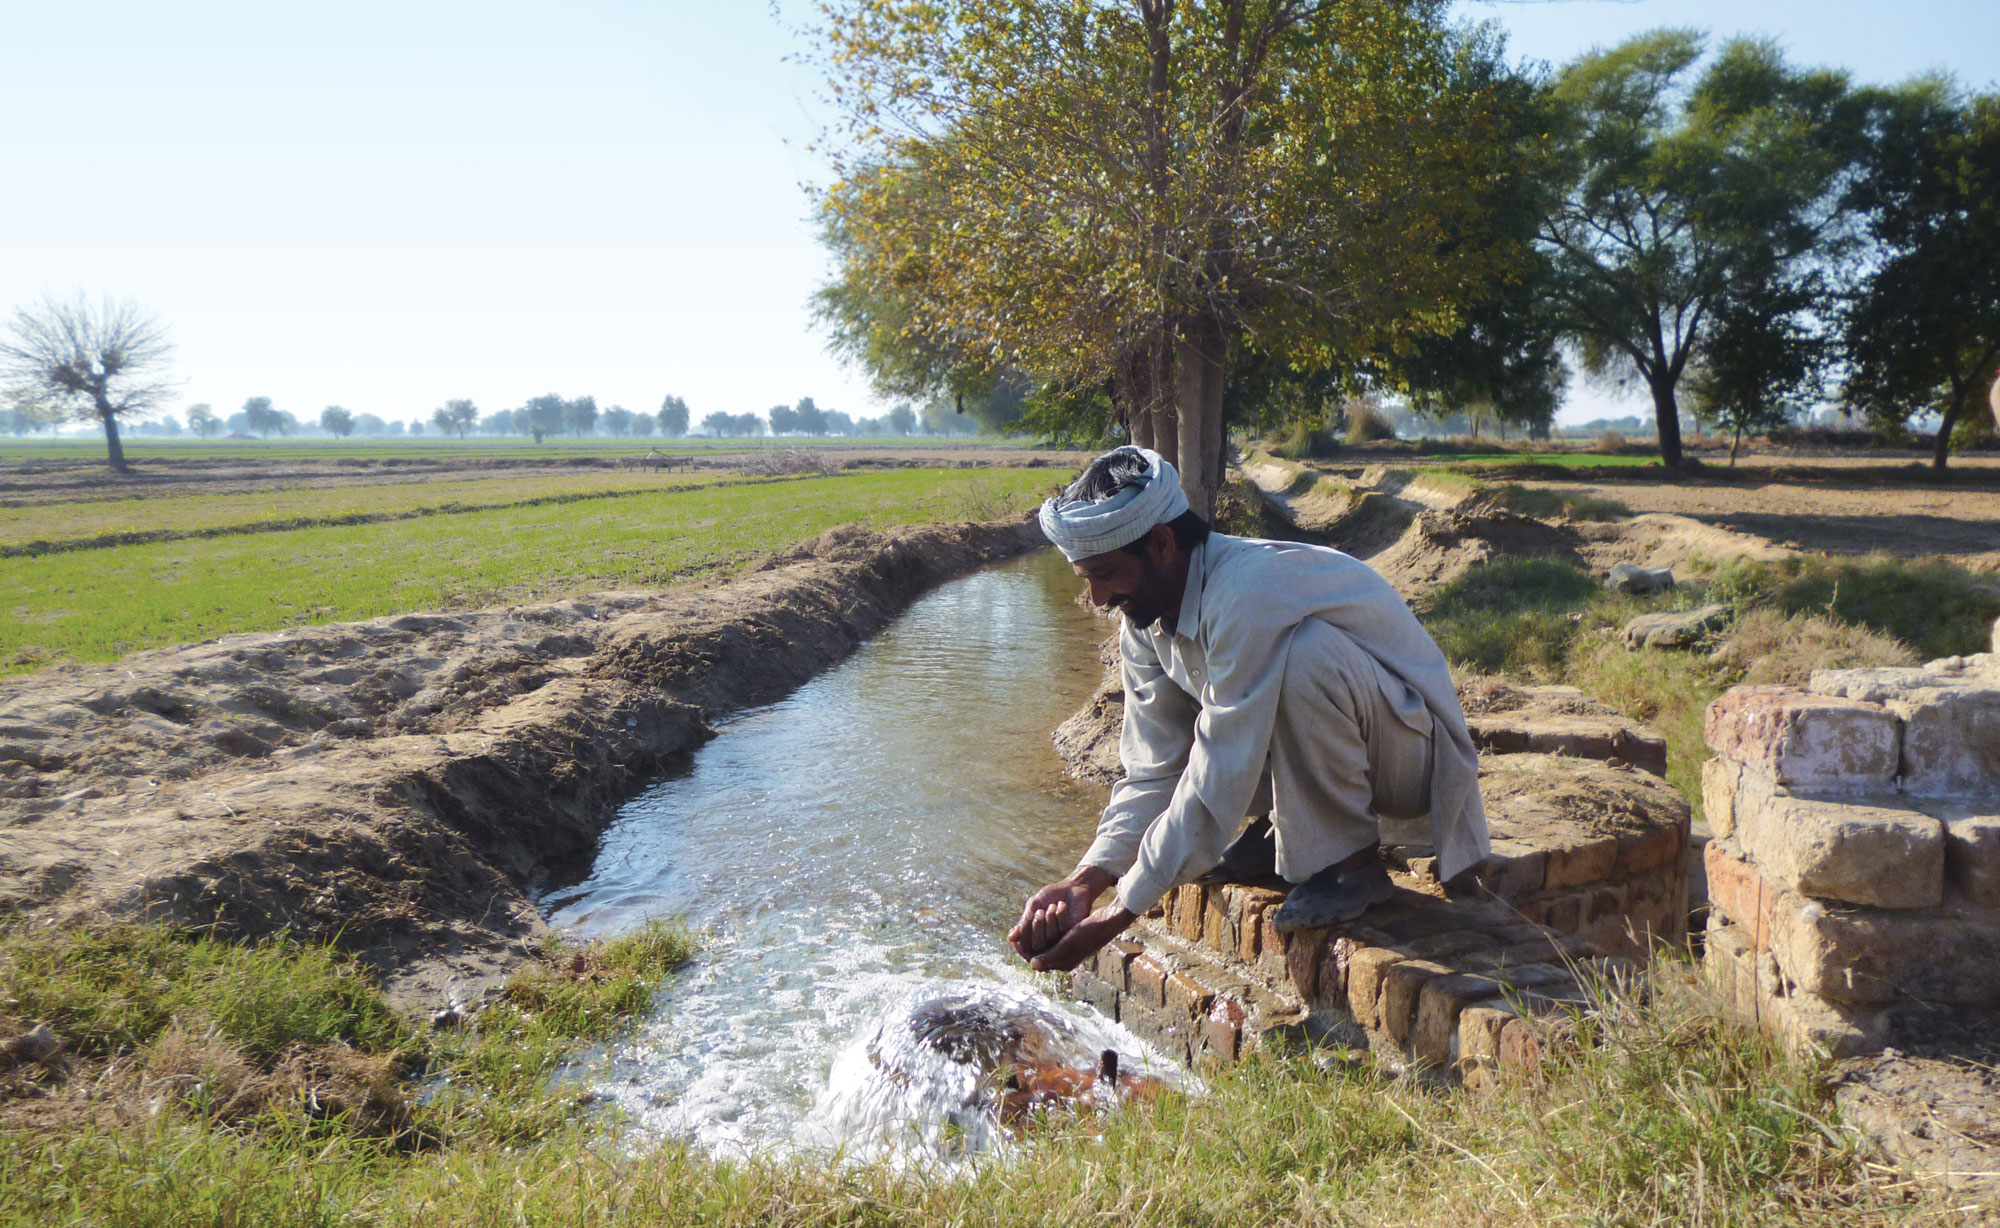 PMKSY has to provide irrigation facilities to roughly 47 million hectares of farmland